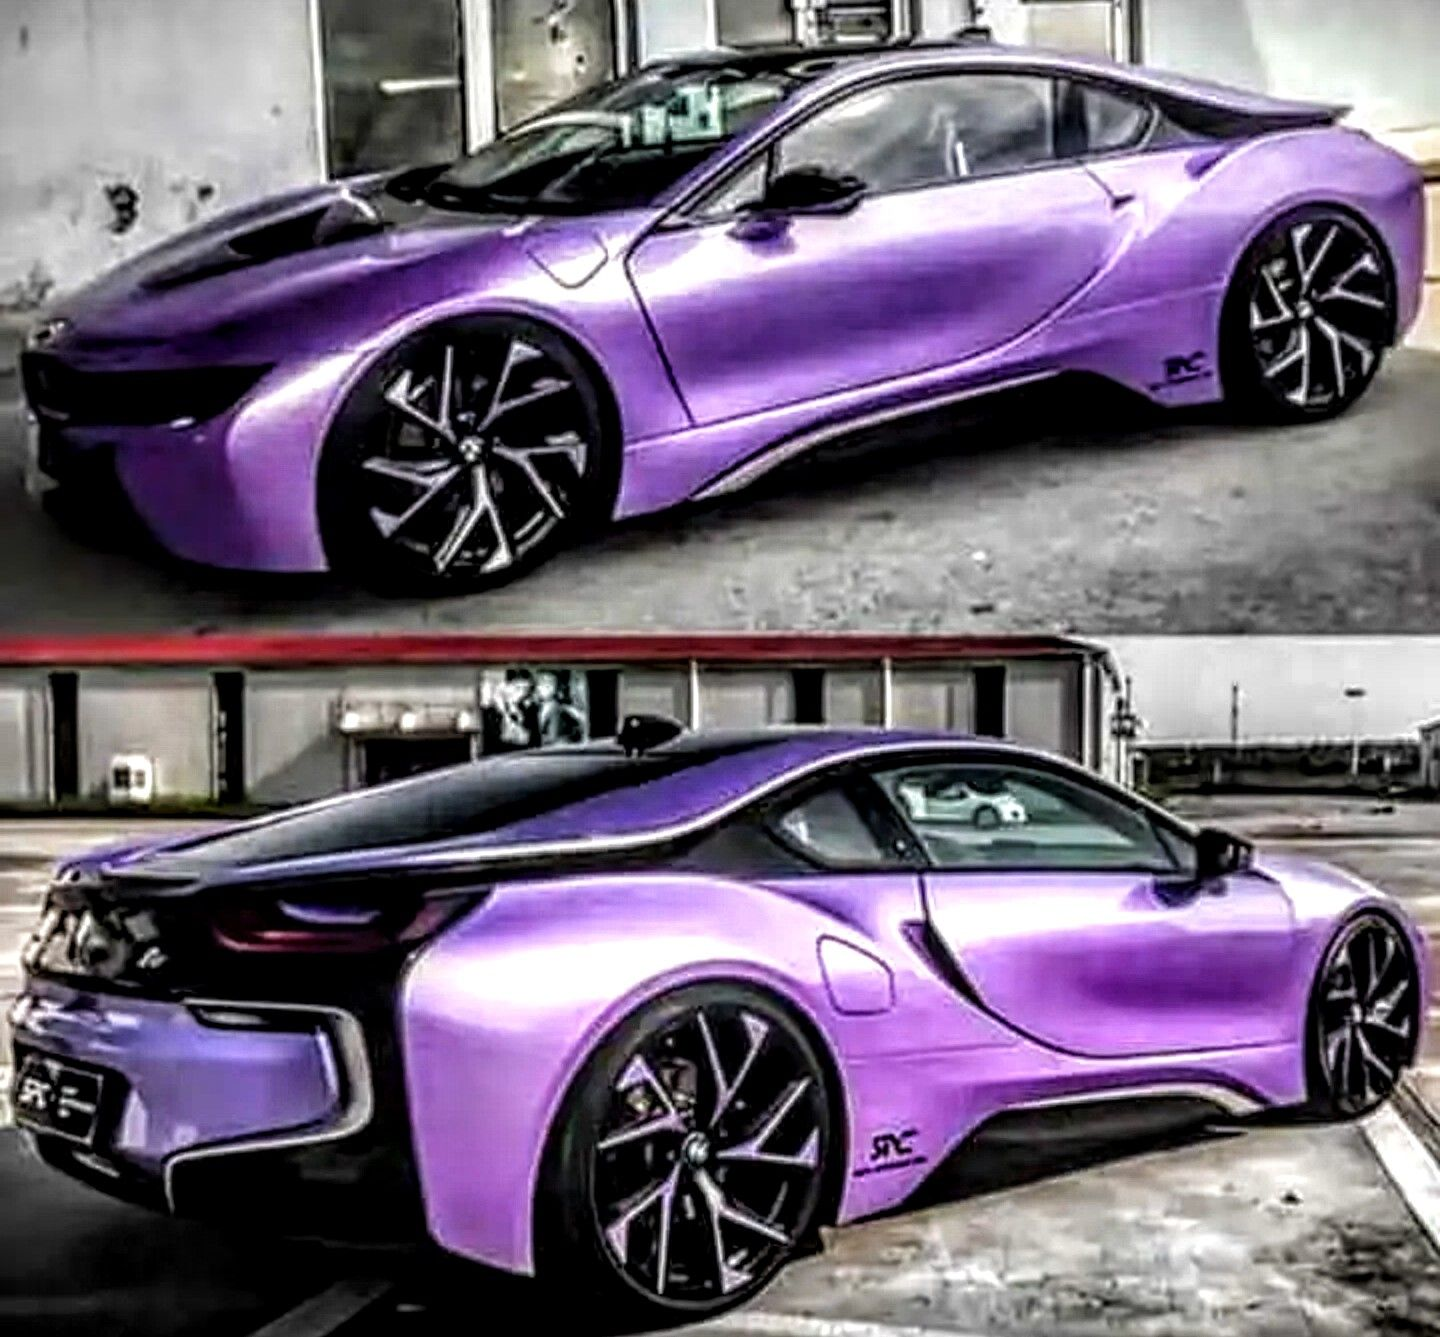 Pin By Dannyjohnny99 On Car S 2018 Pinterest Custom Wheels Cars